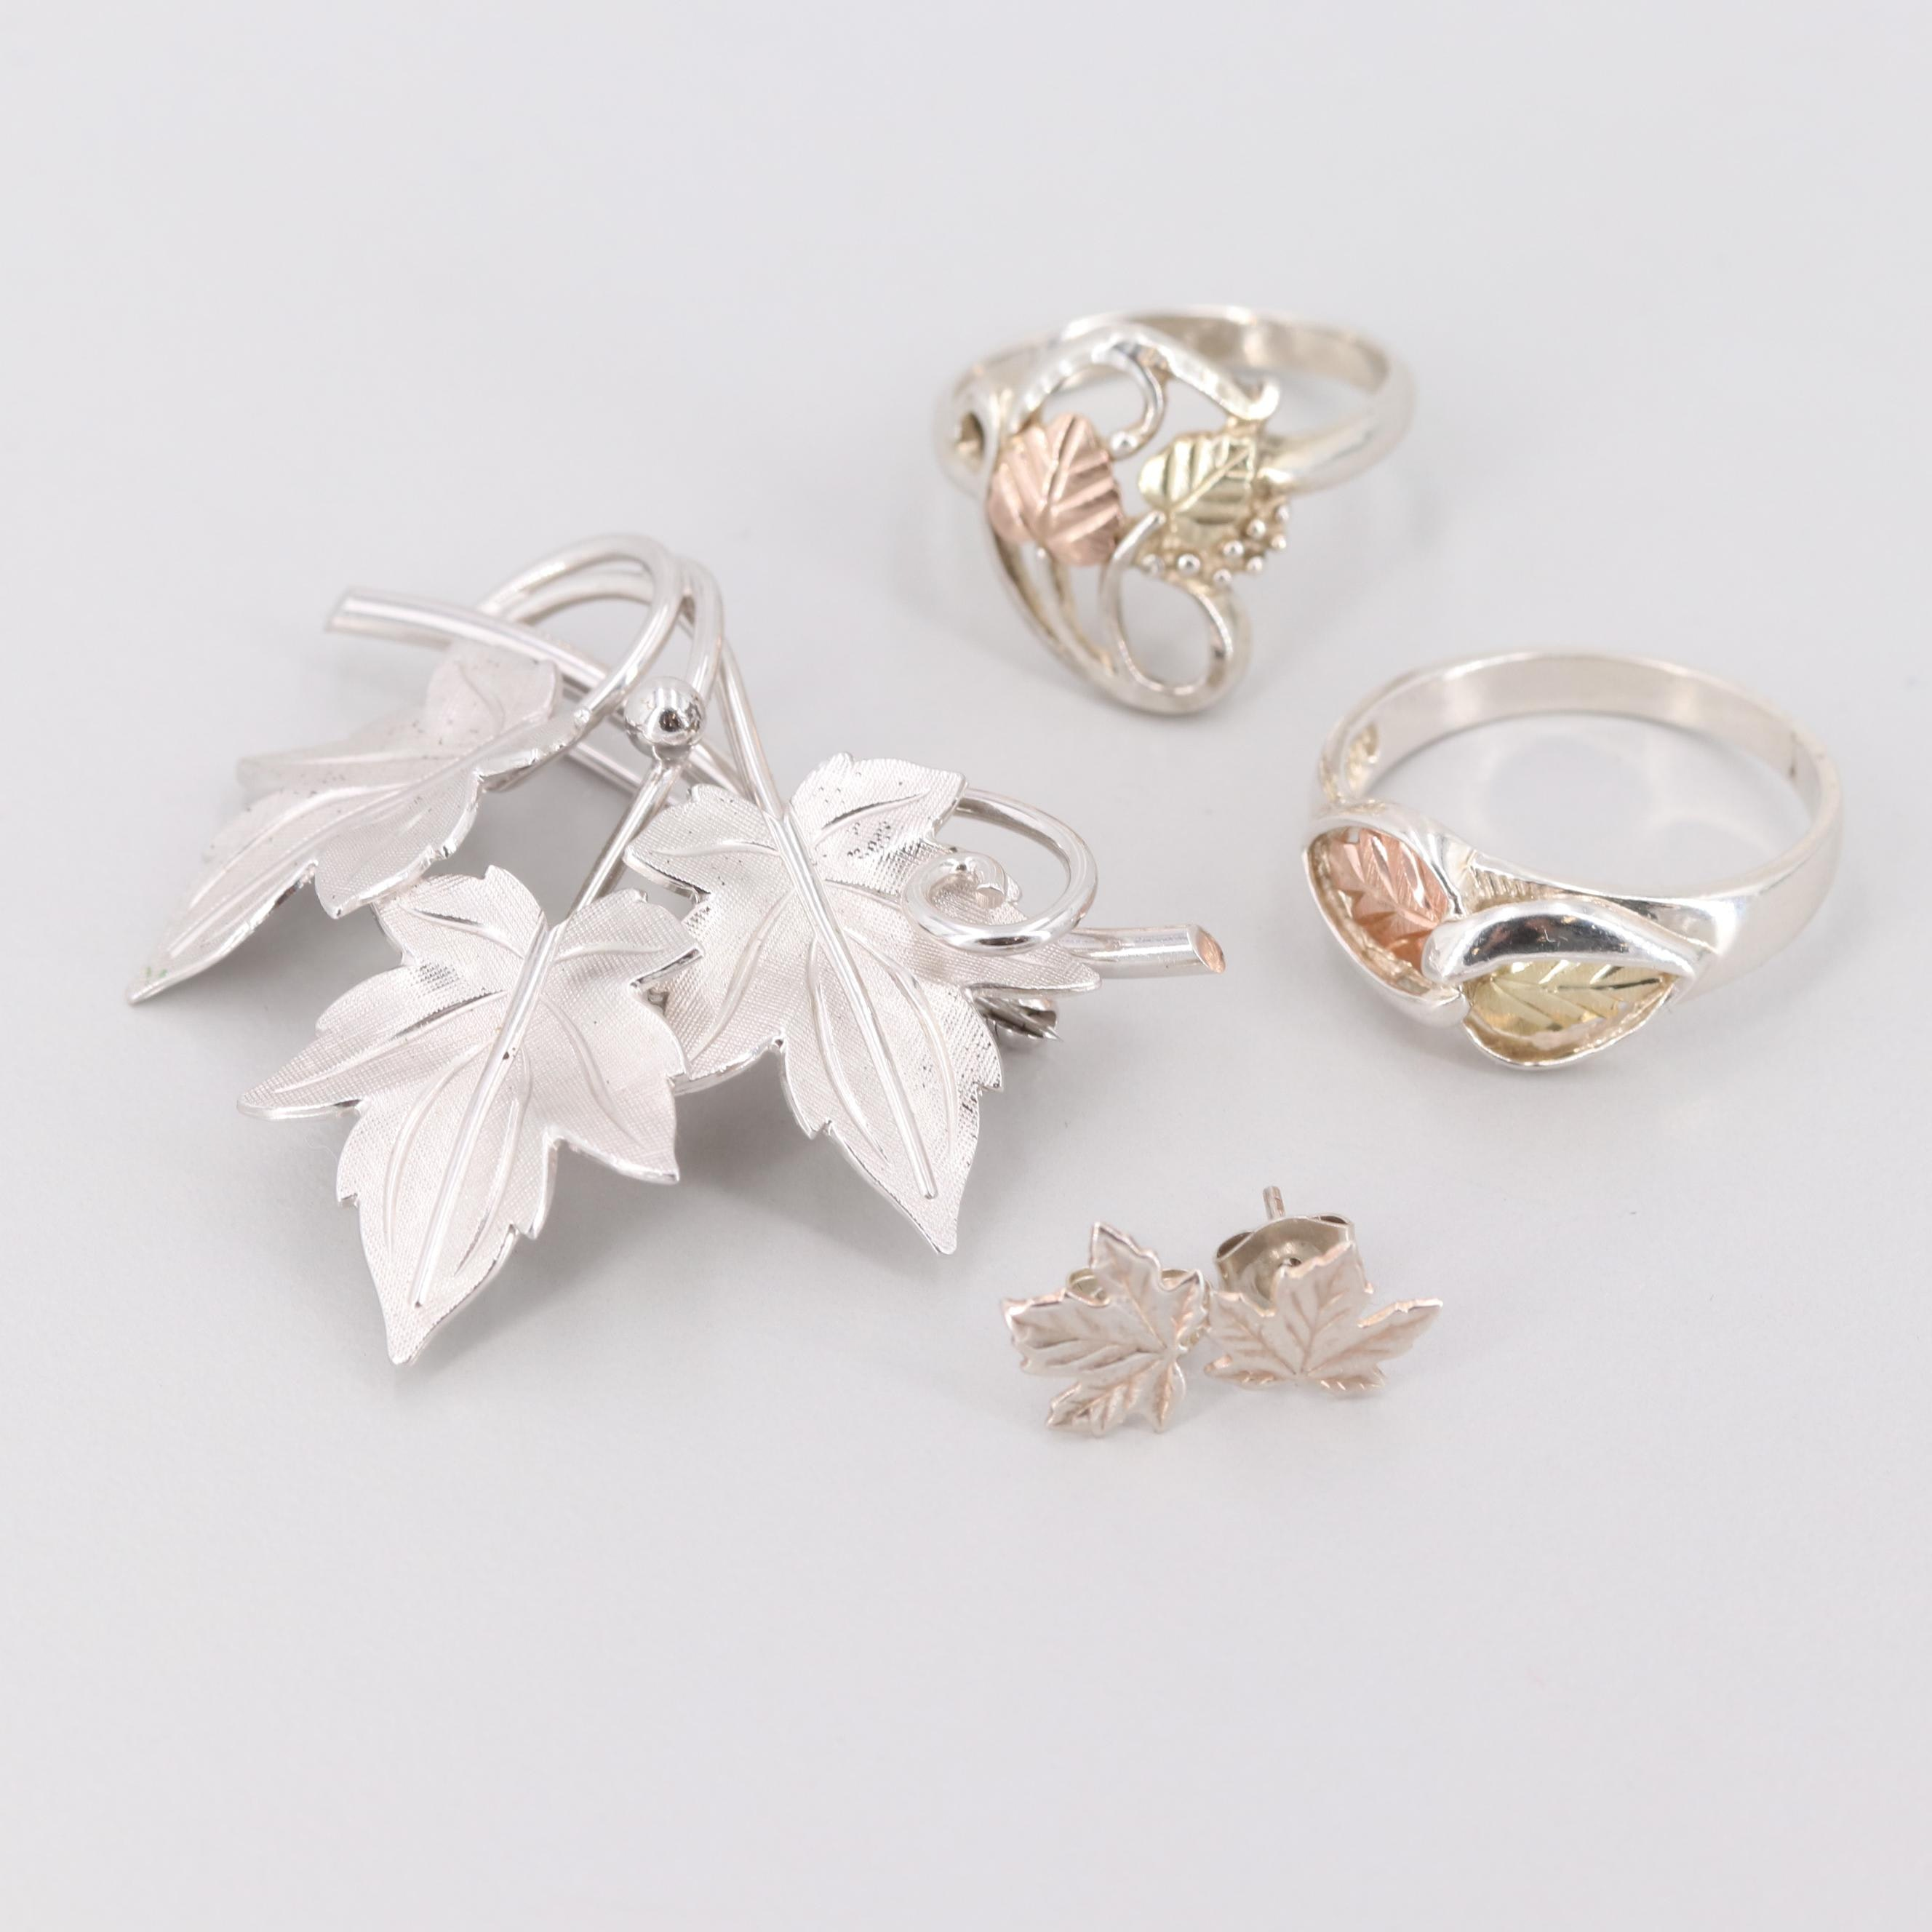 Sterling Silver Plant Motif Brooch, Earrings and Ring with 12K Gold Accents